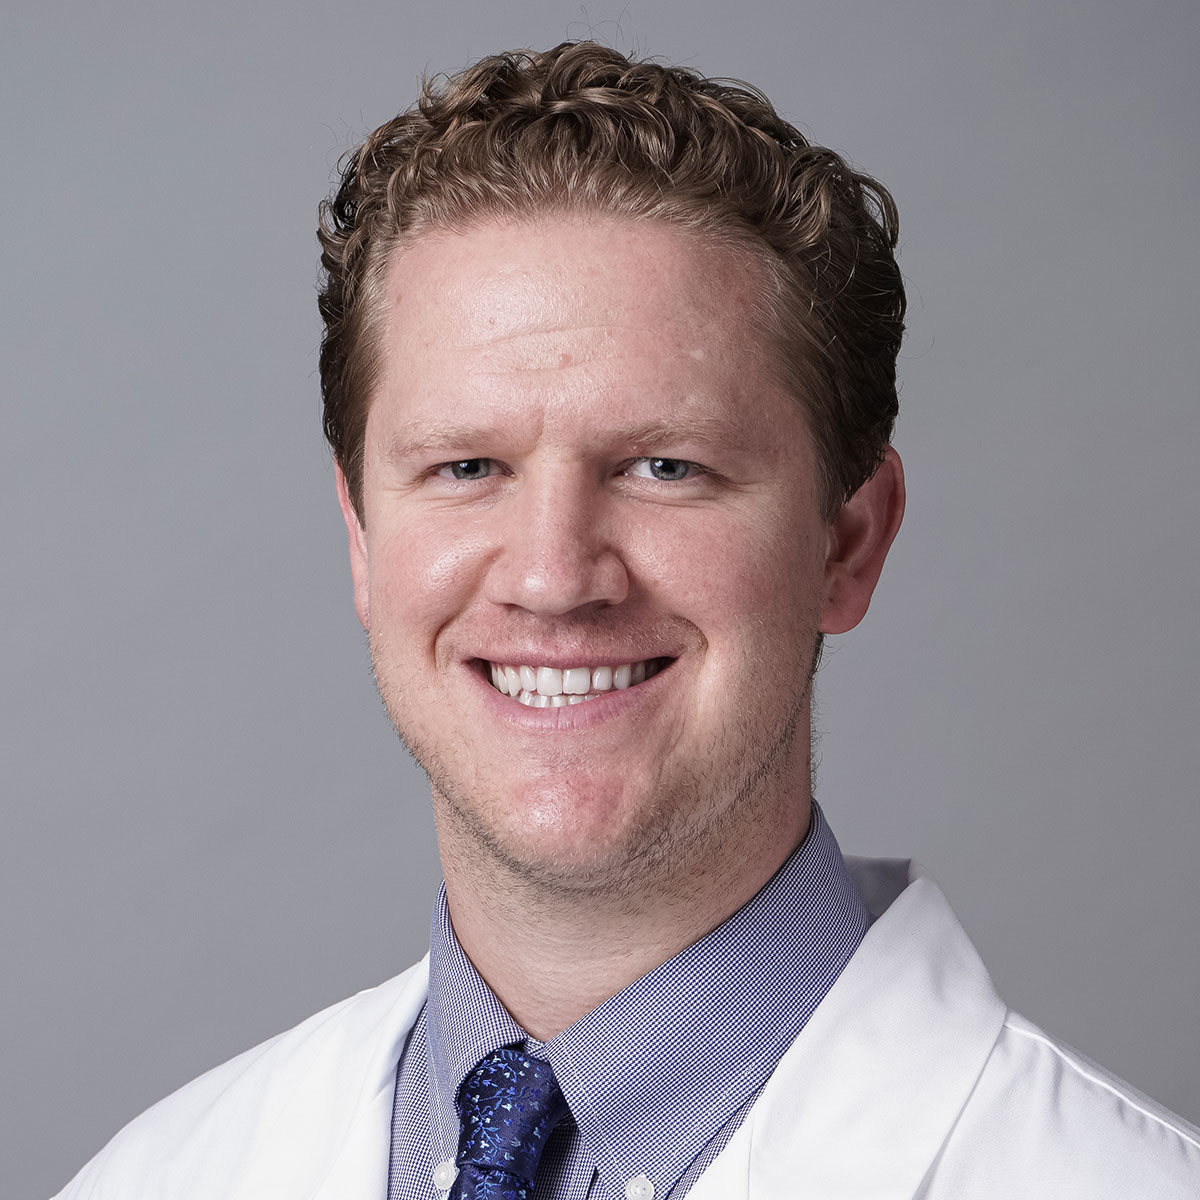 A friendly headshot of Dr. Cameron Kennelly